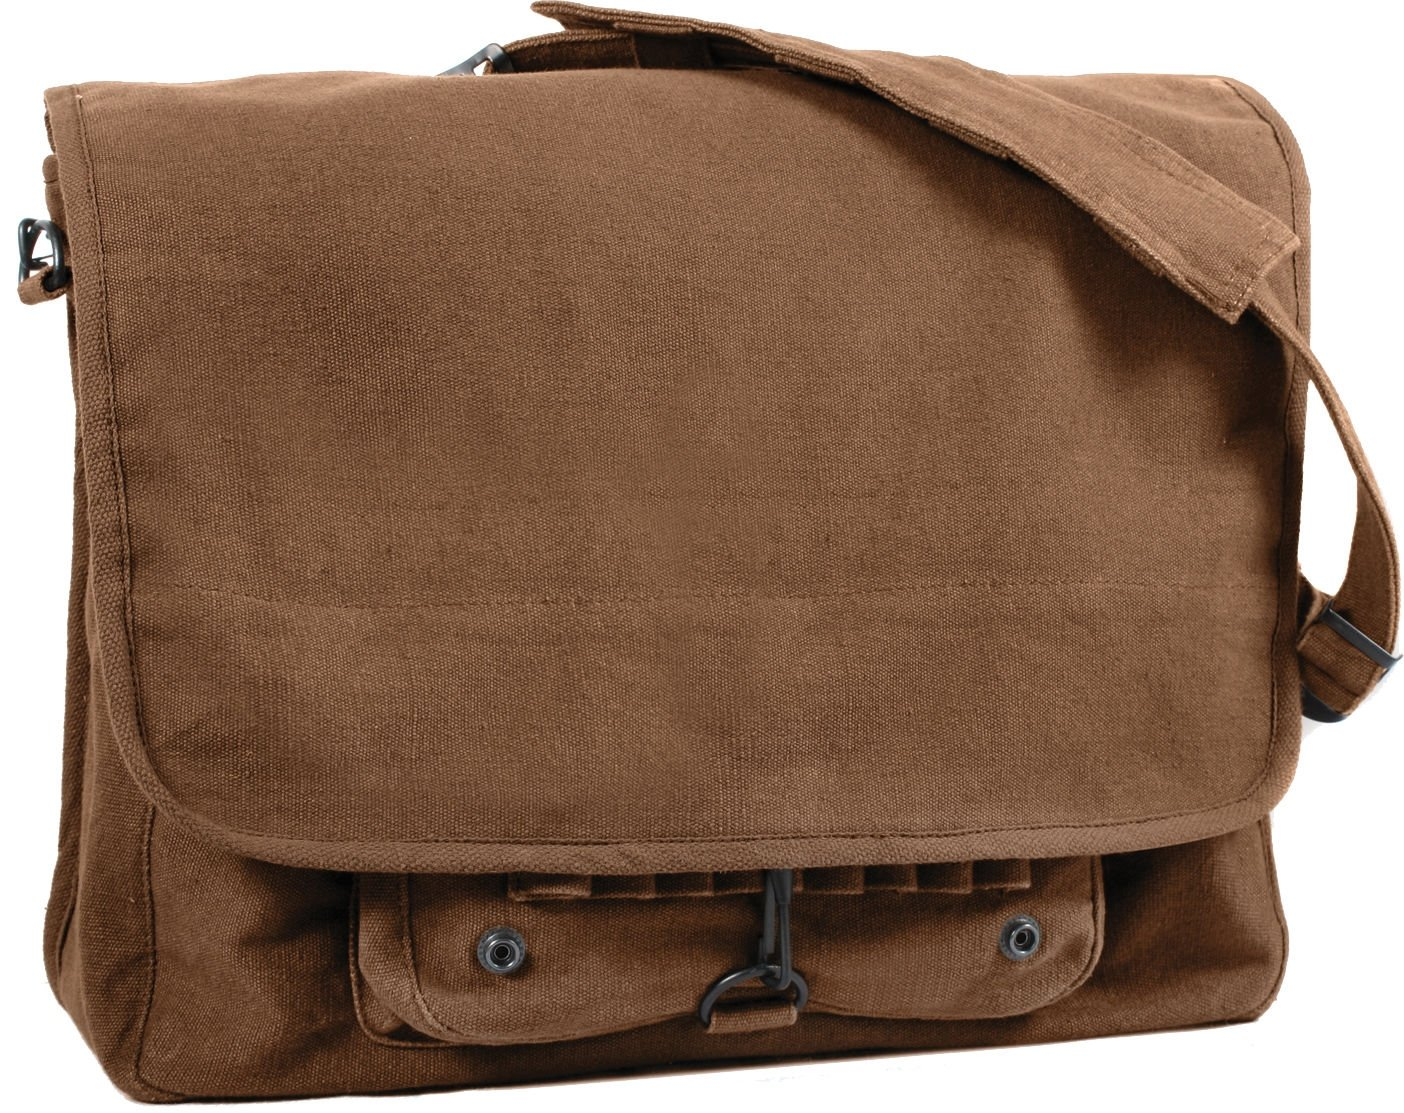 Stonewashed-Vintage-Style-Military-Paratrooper-Messenger-Shoulder-Bag